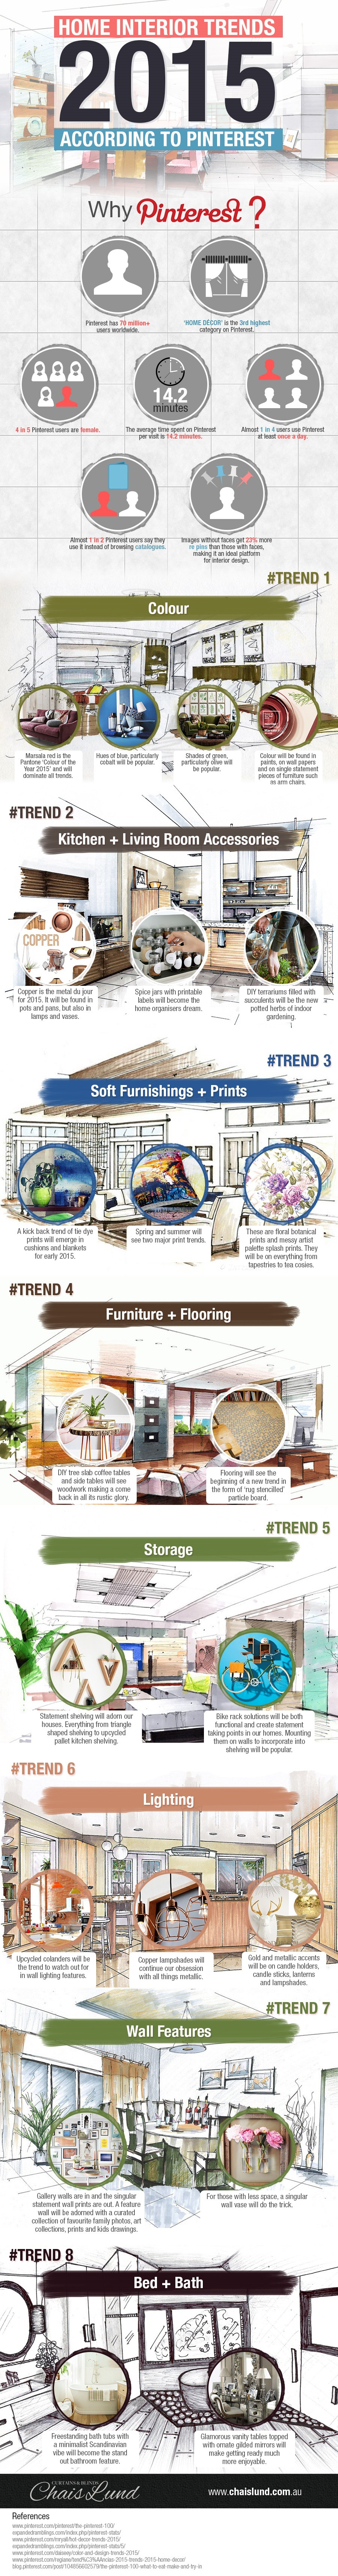 Home Interior Trends 2015